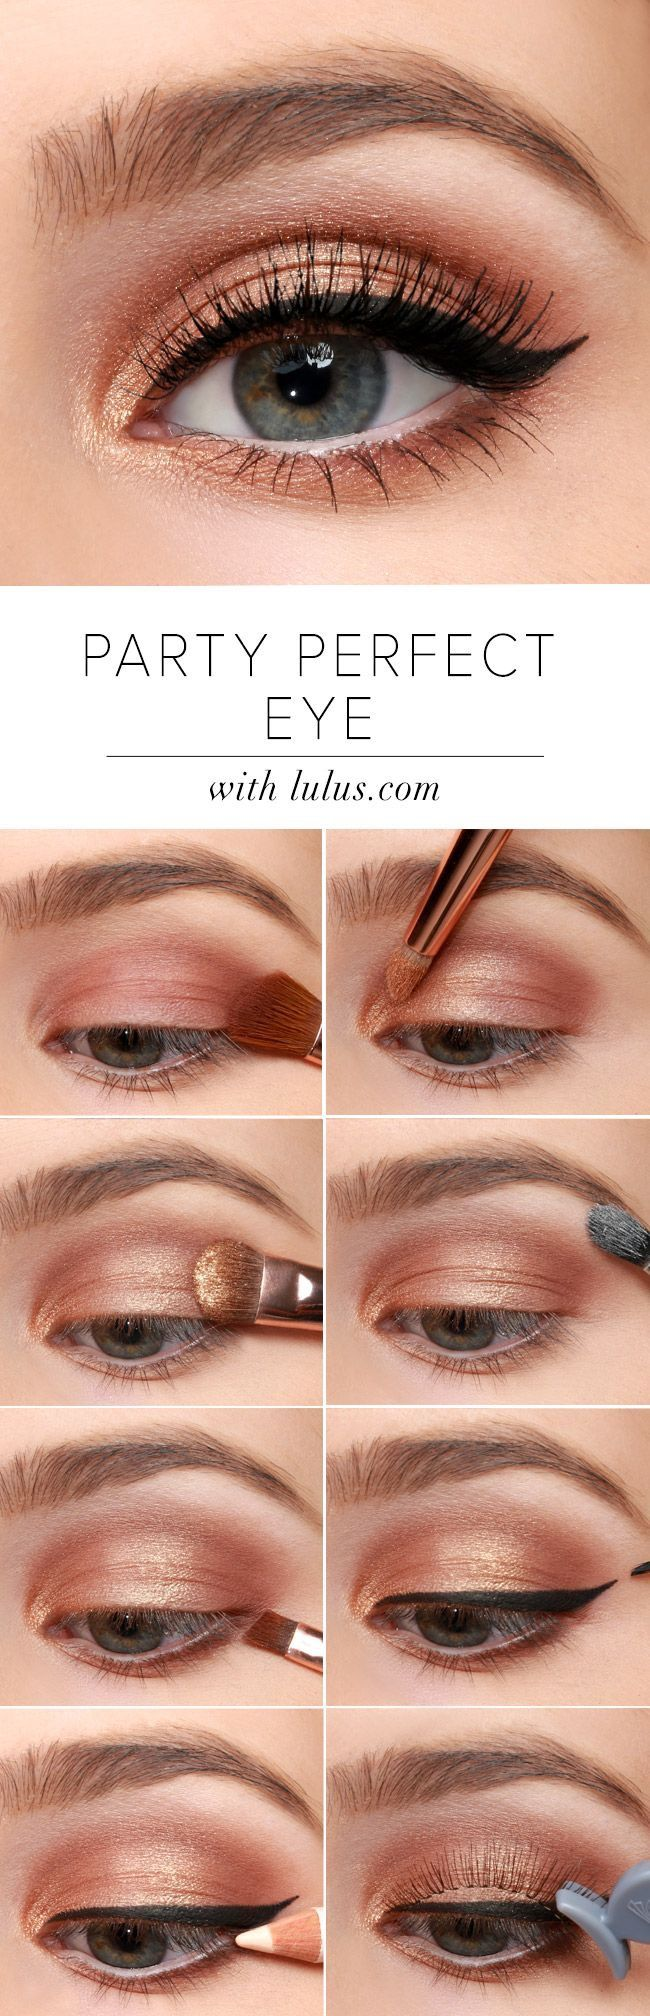 The Power Of Simplify Beauty Pinterest Power Of Makeup Eyes